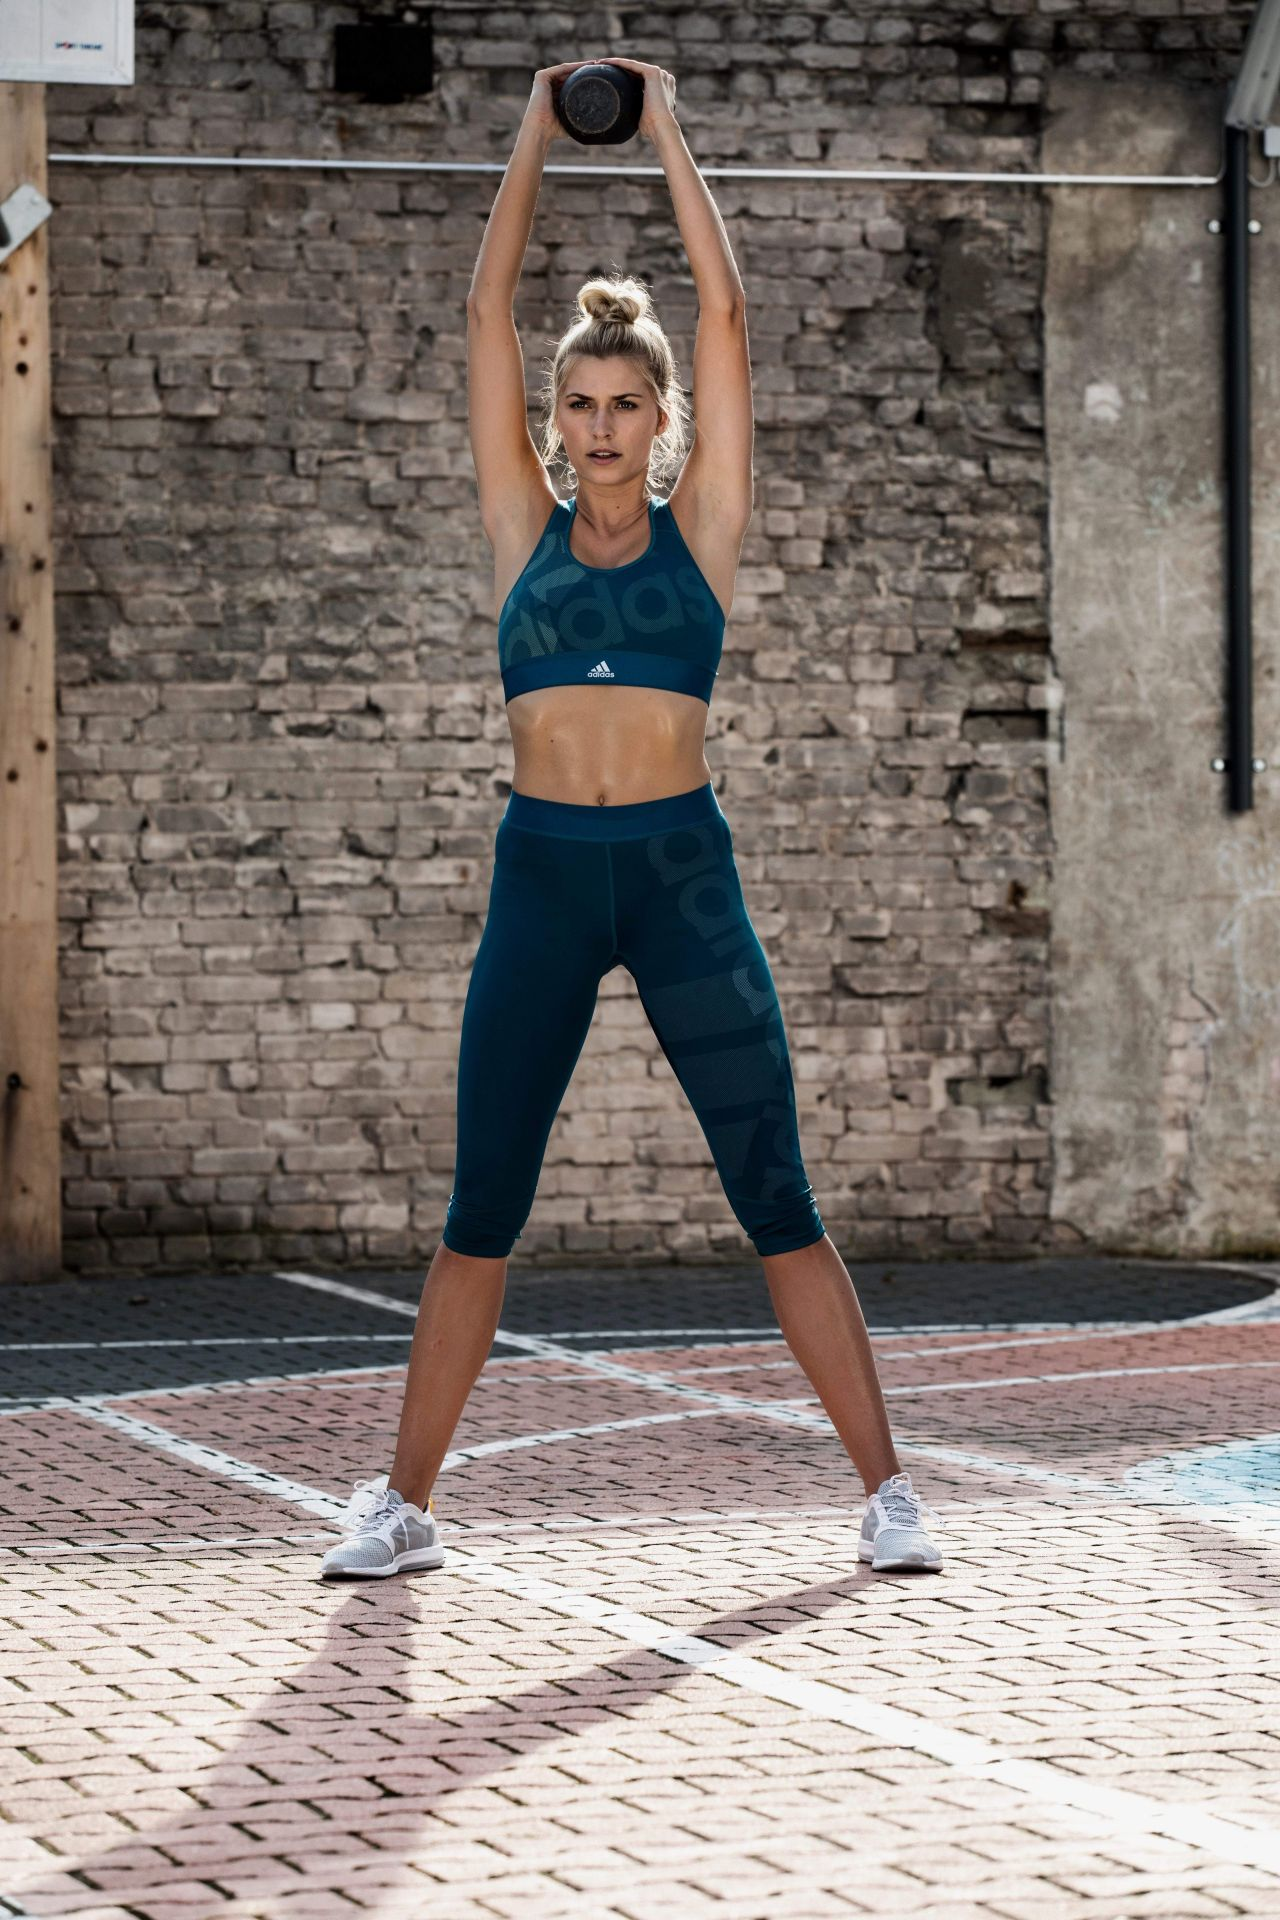 Lena Gercke Call Me An Early Bird Photoshoot For Adidas 2017